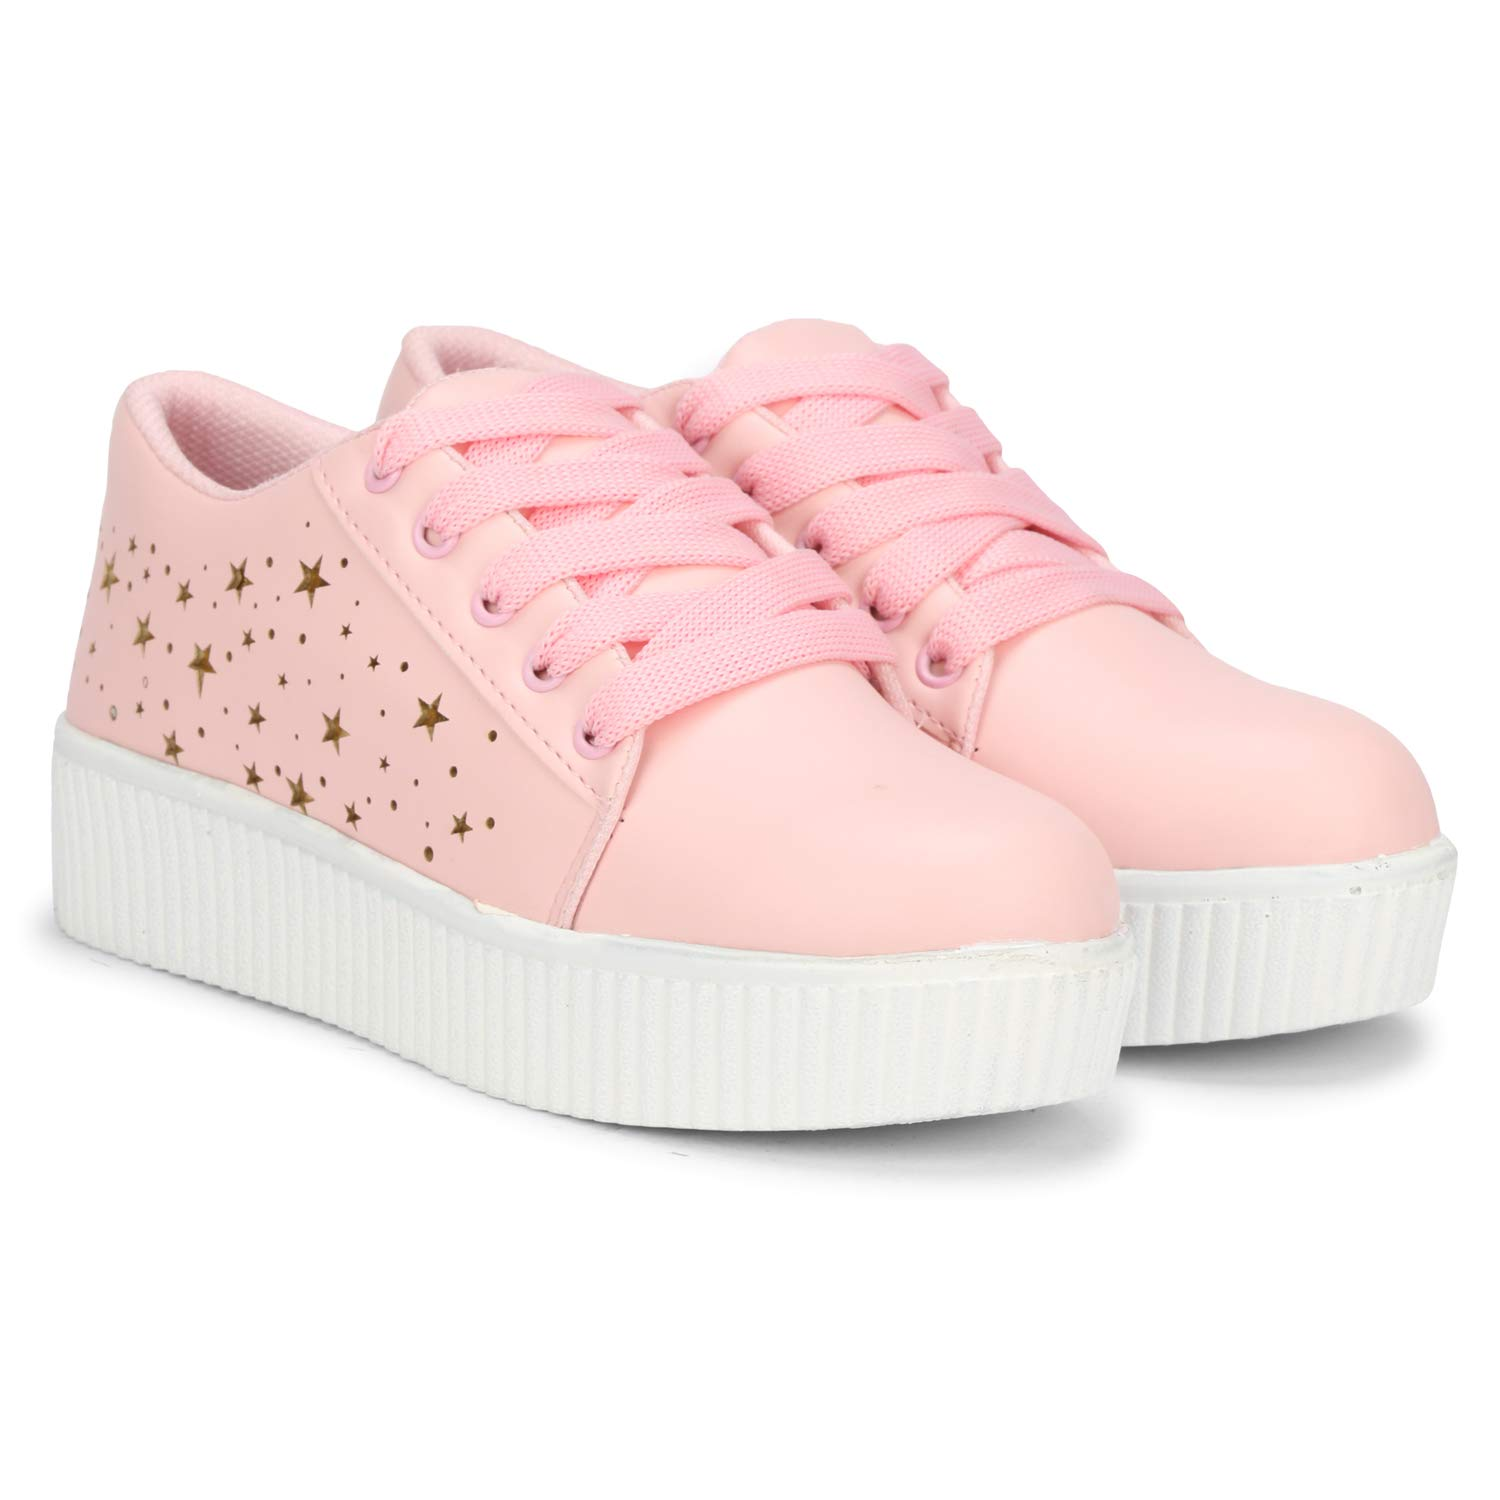 sneaker shoes for women's and girls